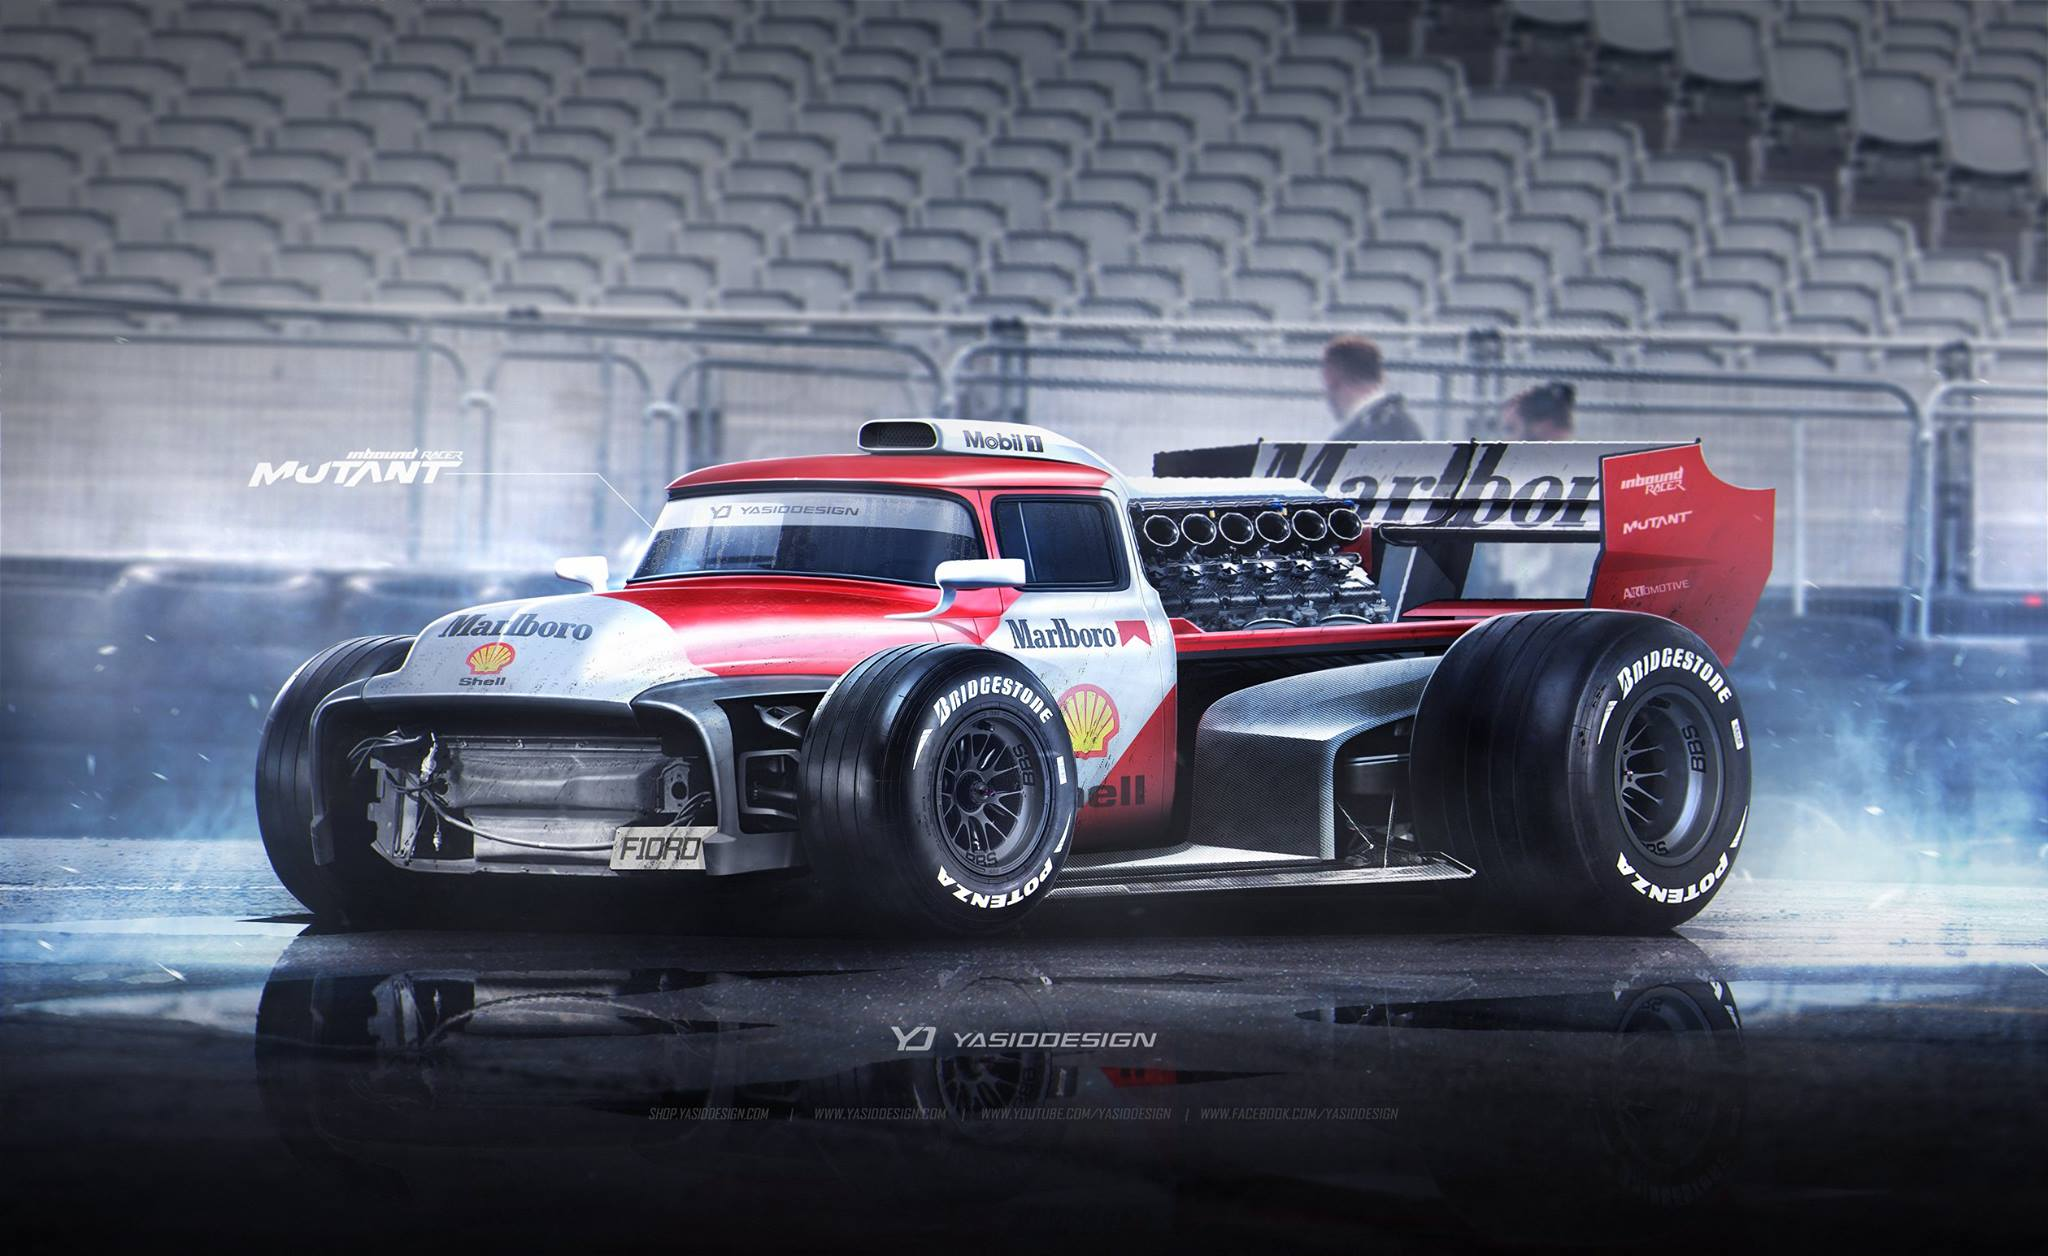 Ford F 100 Meets V12 F1 Car In Mindblowing Rendering